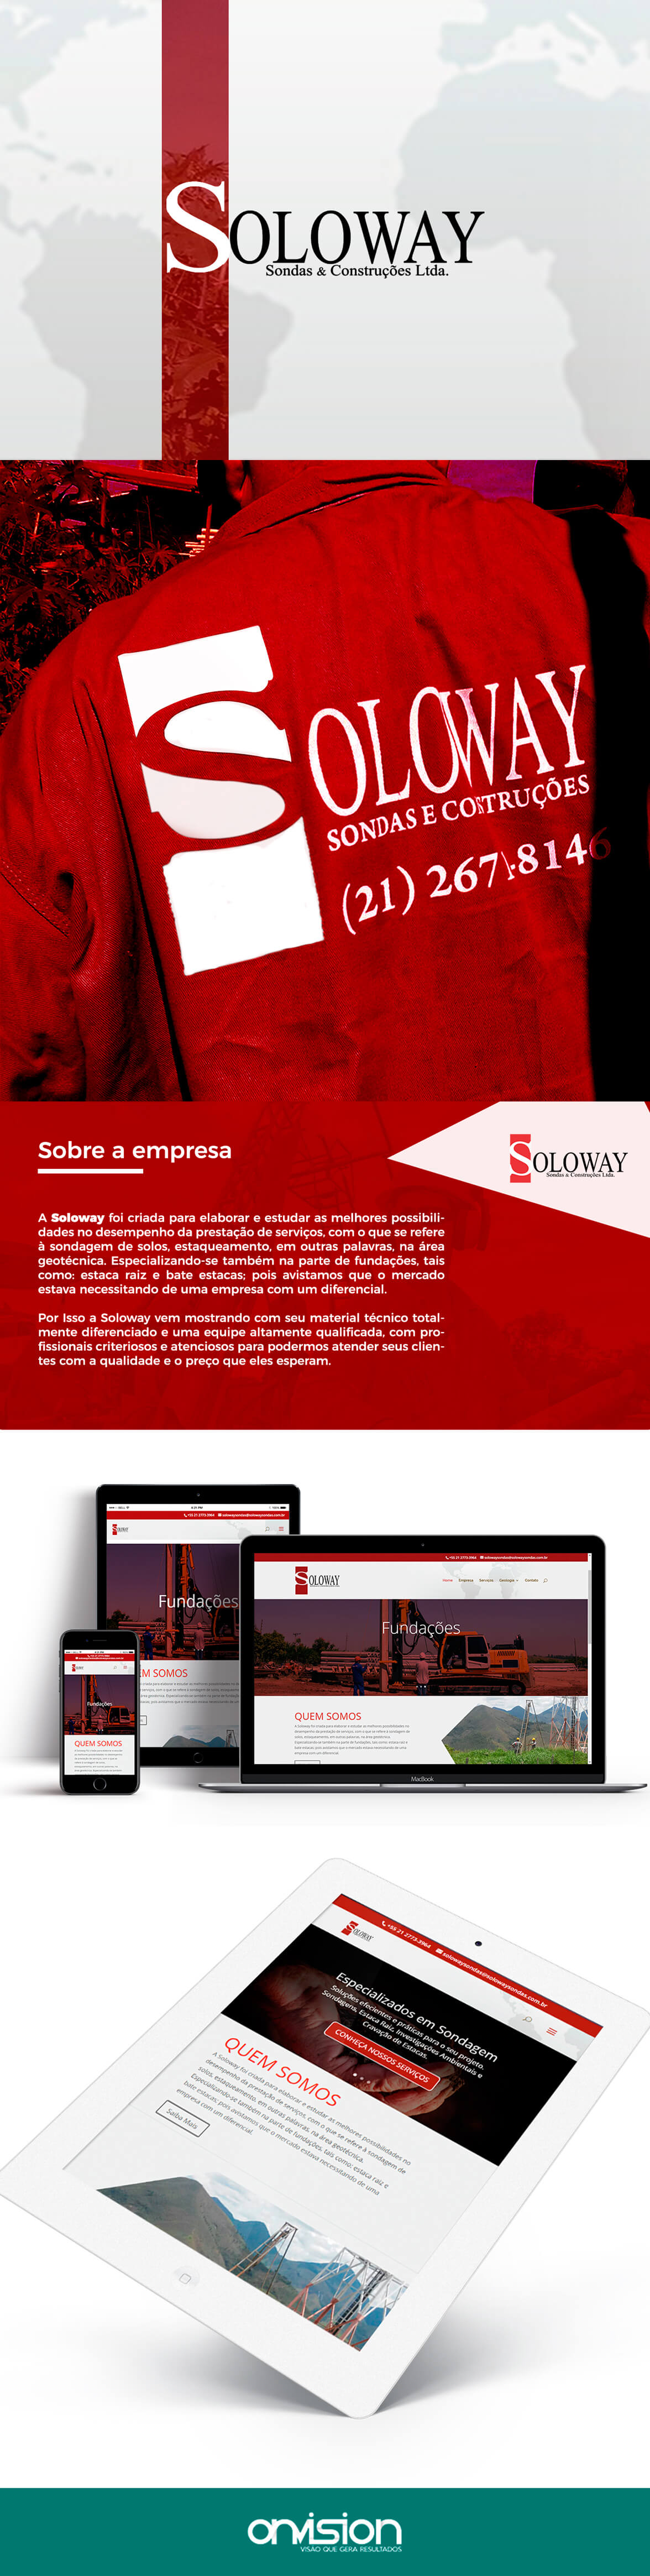 Soloway-criacao-sites